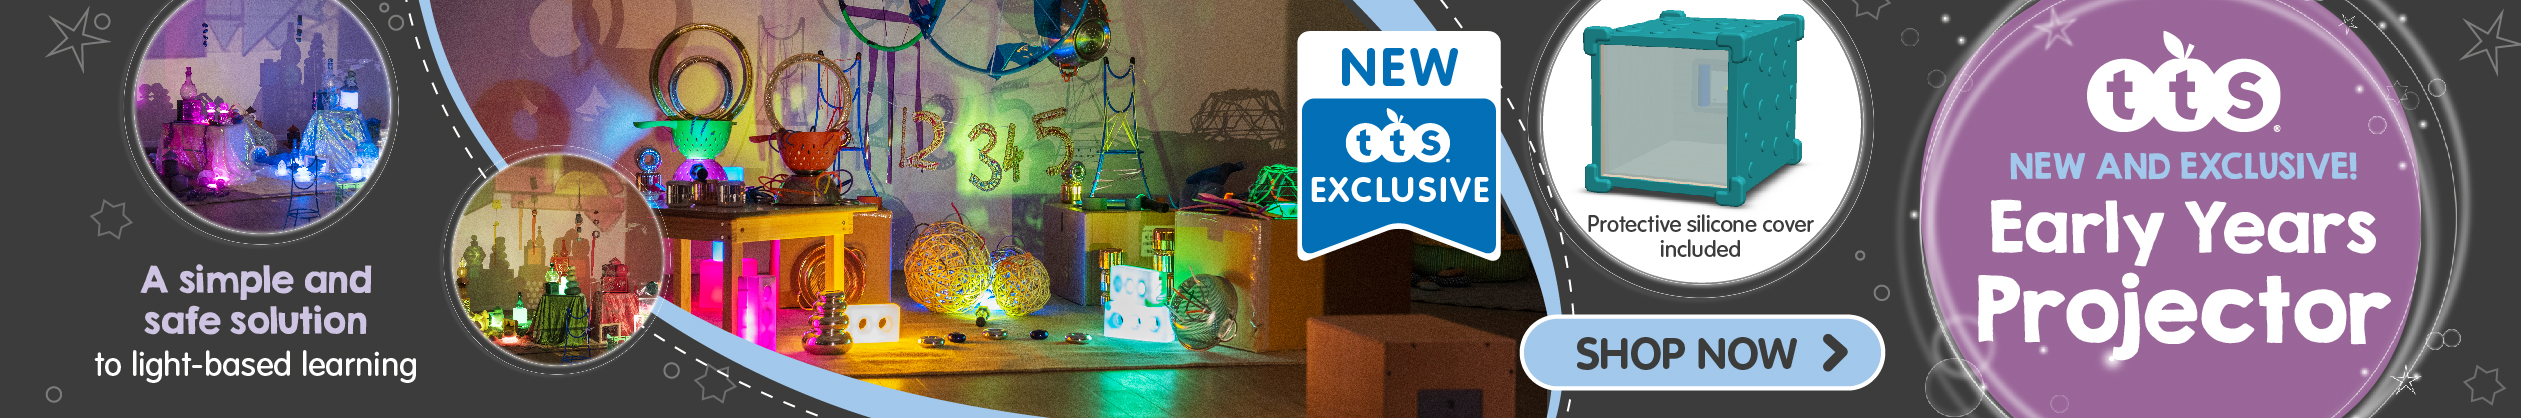 Shop the NEW Early Years Projector. Tried and tested by teachers an practitioners. Shop Now